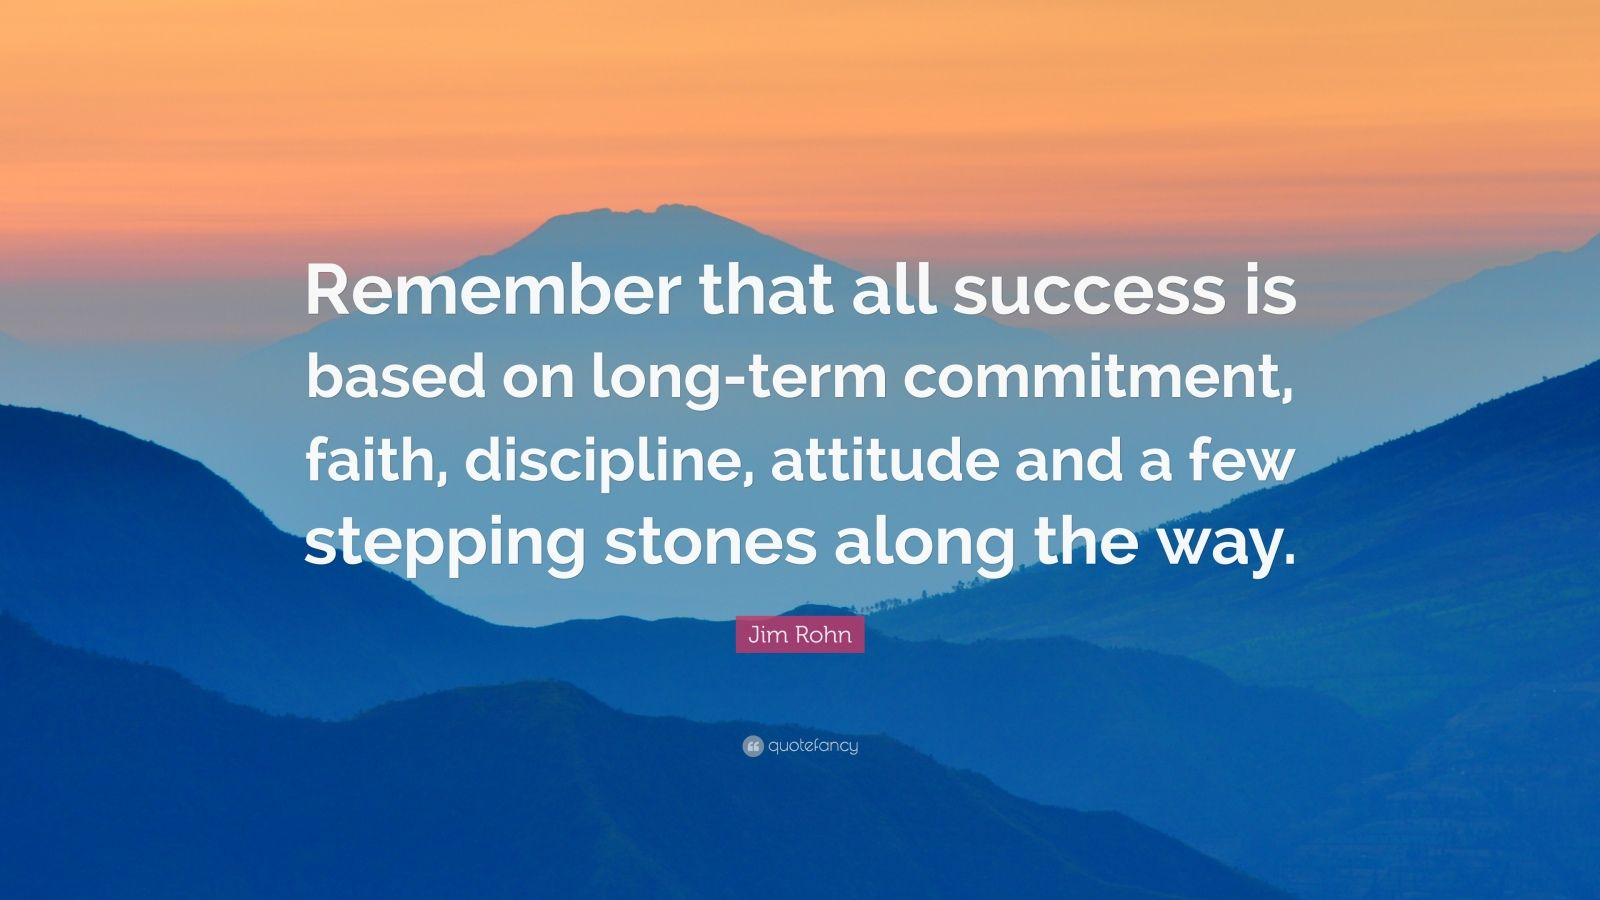 """Jim Rohn Quote: """"Remember that all success is based on long-term commitment, faith, discipline, attitude and a few stepping stones along the way."""""""